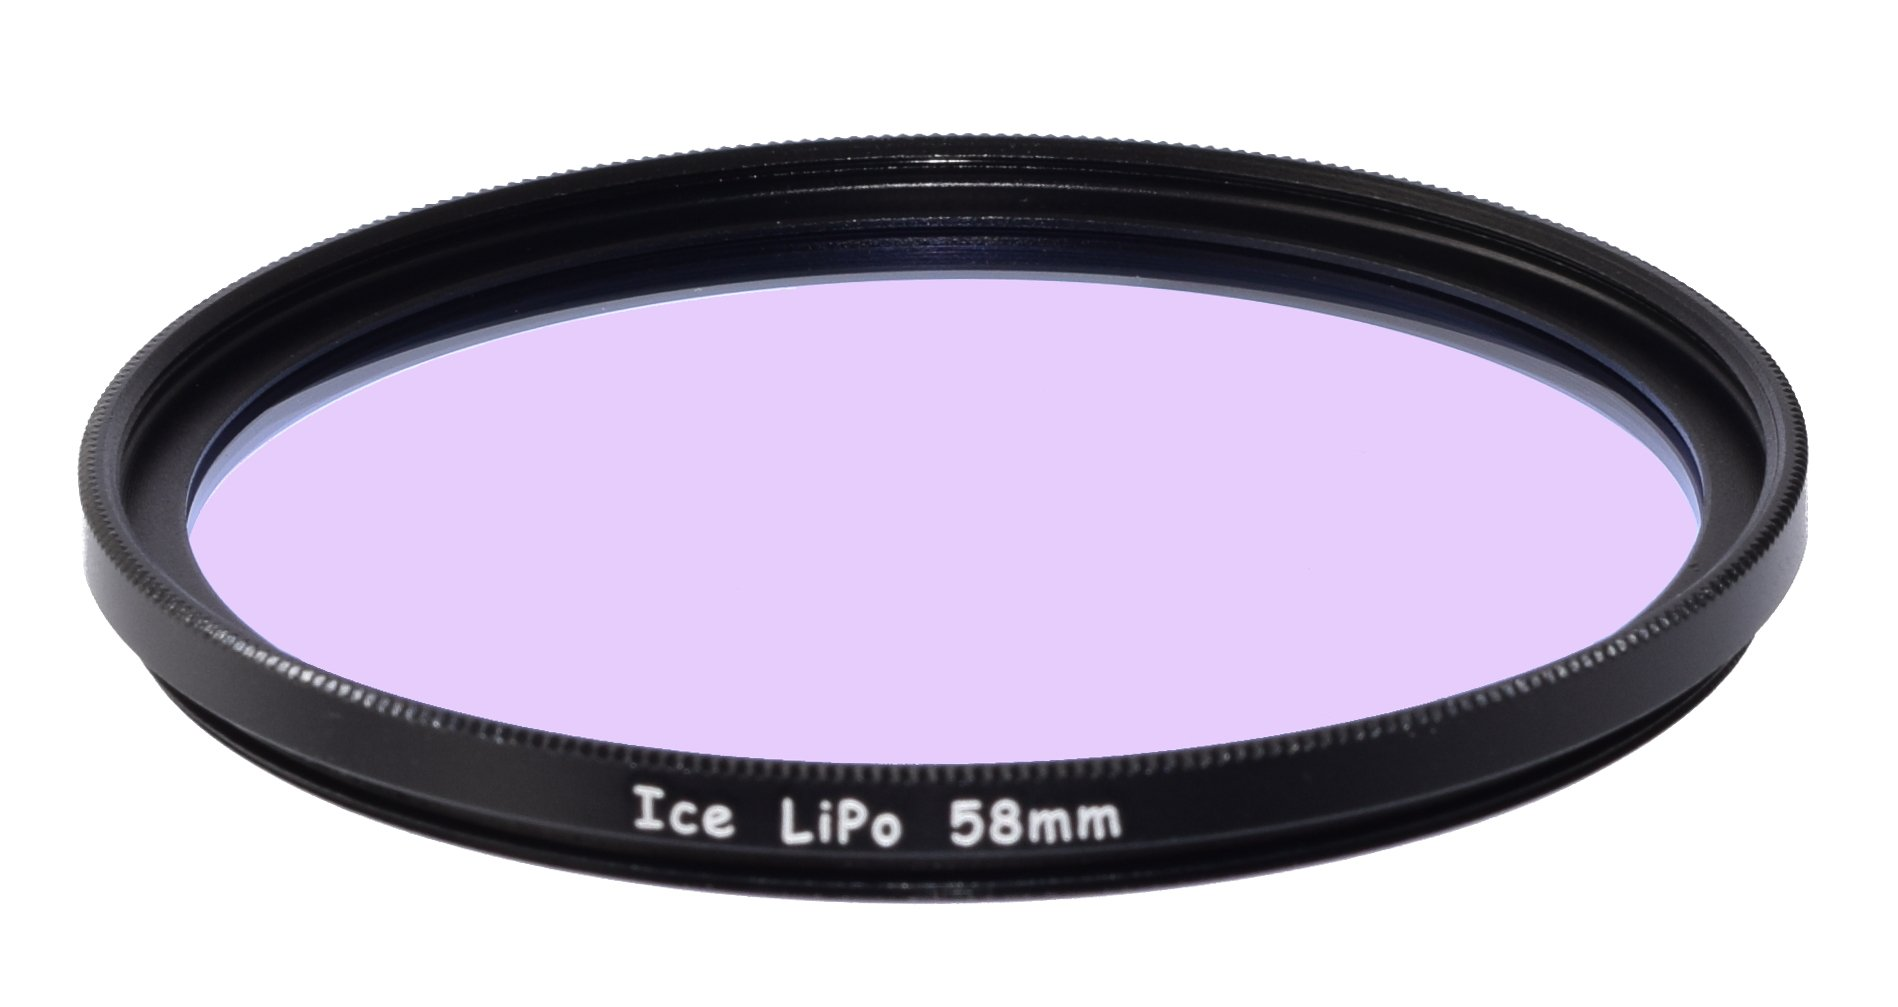 ICE 58mm LiPo Filter Light Pollution Reduction for Night Sky/Star 58